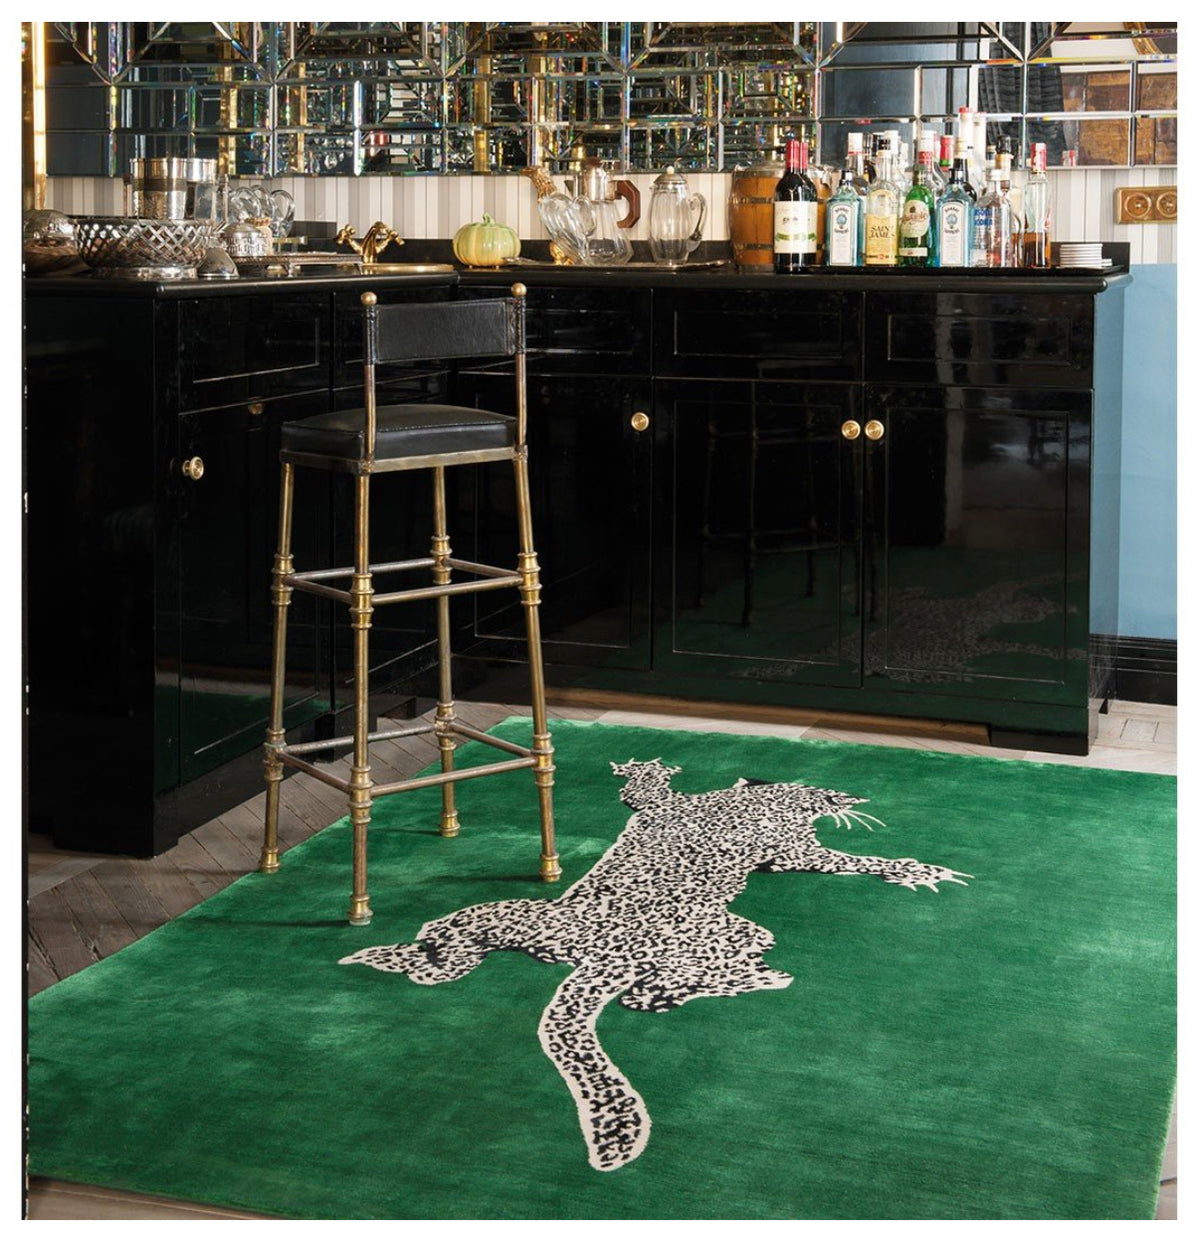 The Rug Company Climbing Leopard Rug